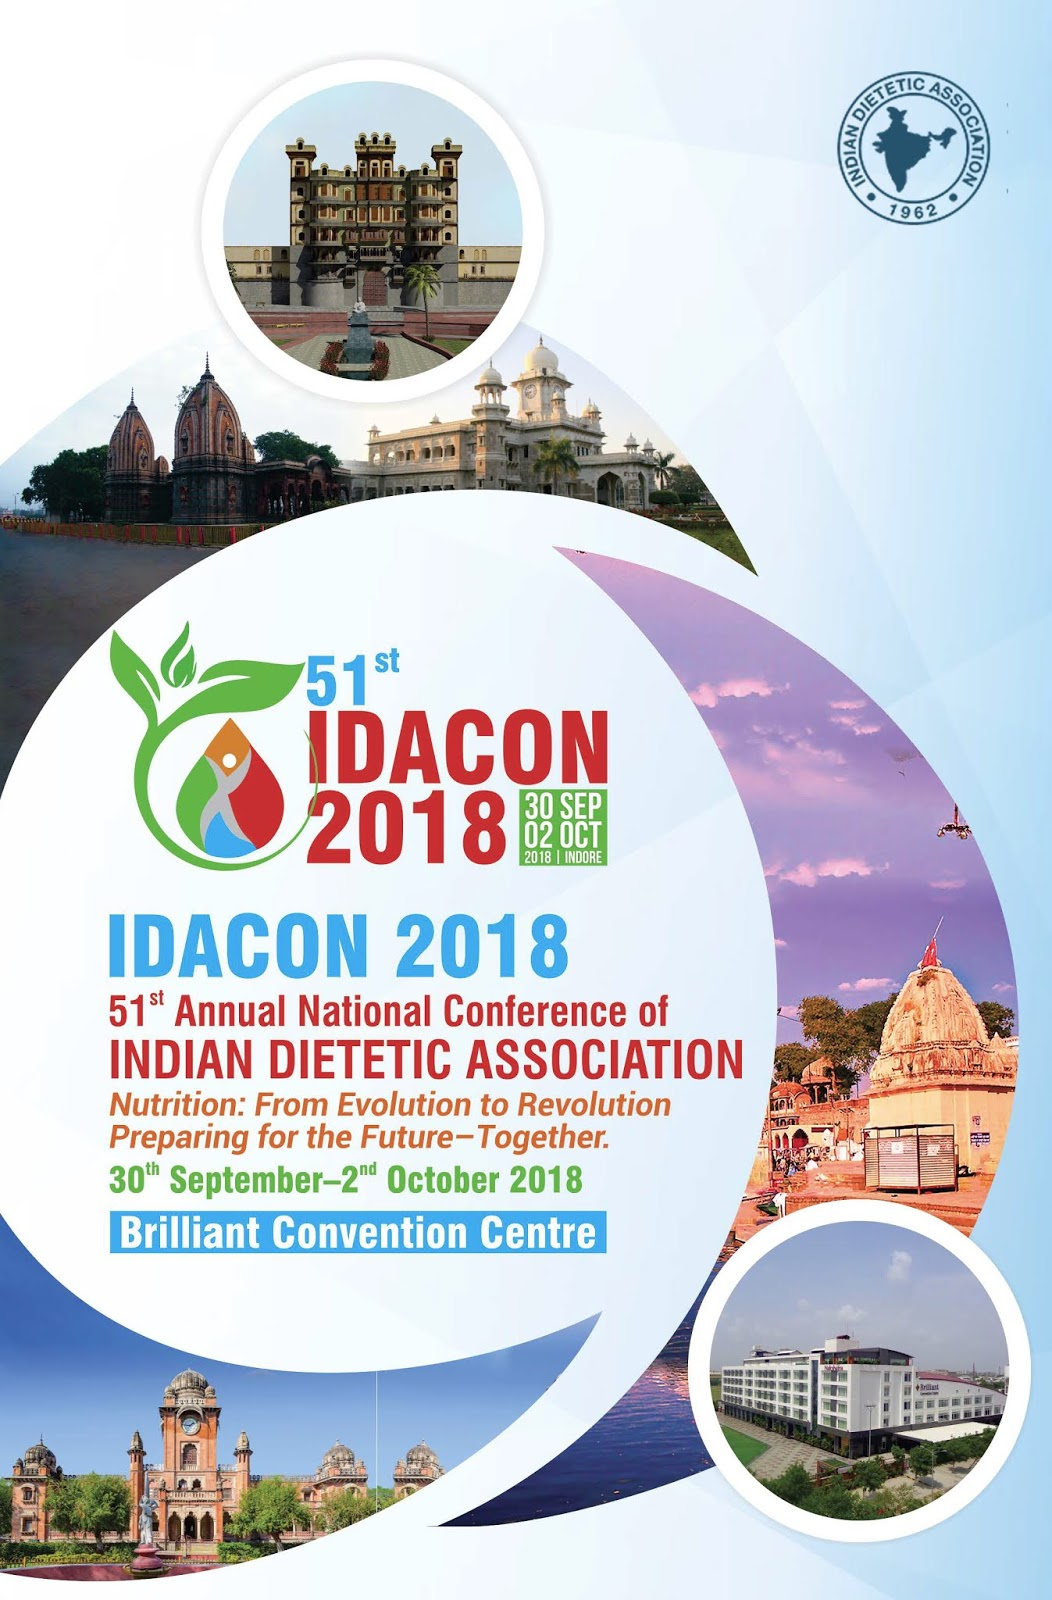 The 51st Annual National Conference of Indian Dietetic Association